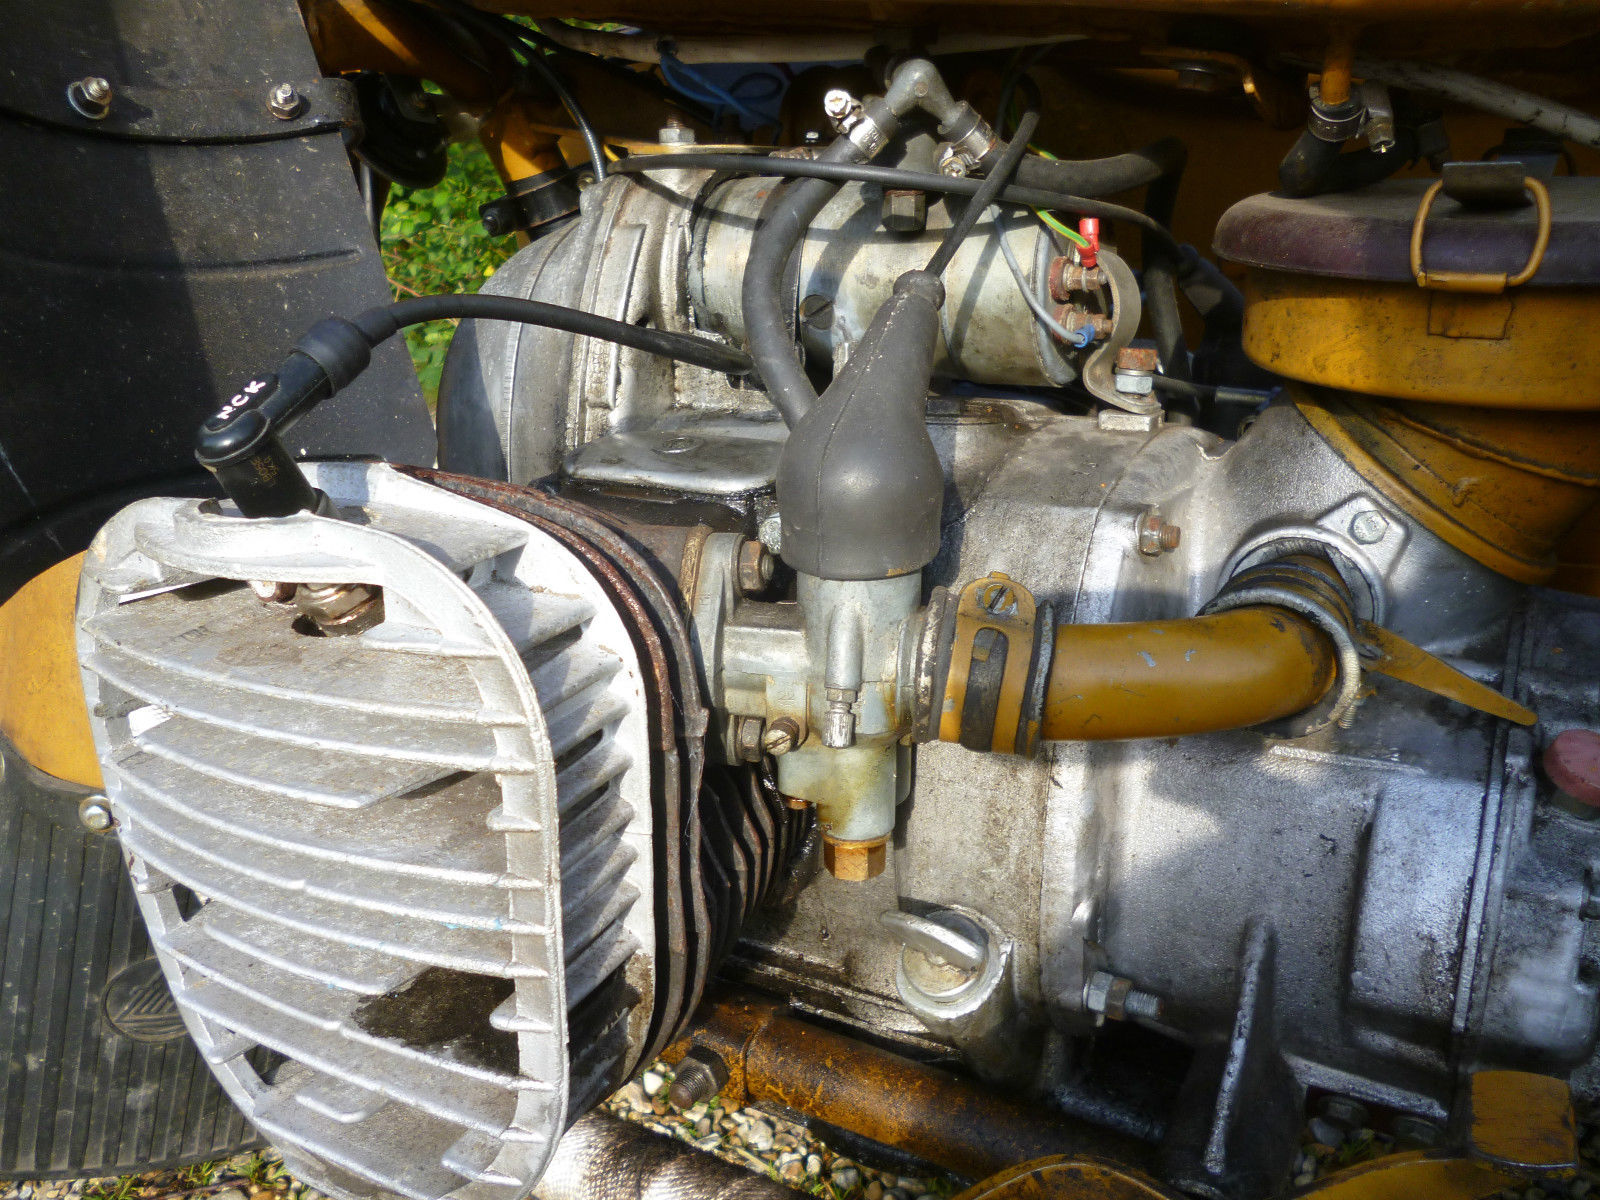 Motorcycle Wiring Diagram For 4 Cylinder Engine Style This Motorcycle